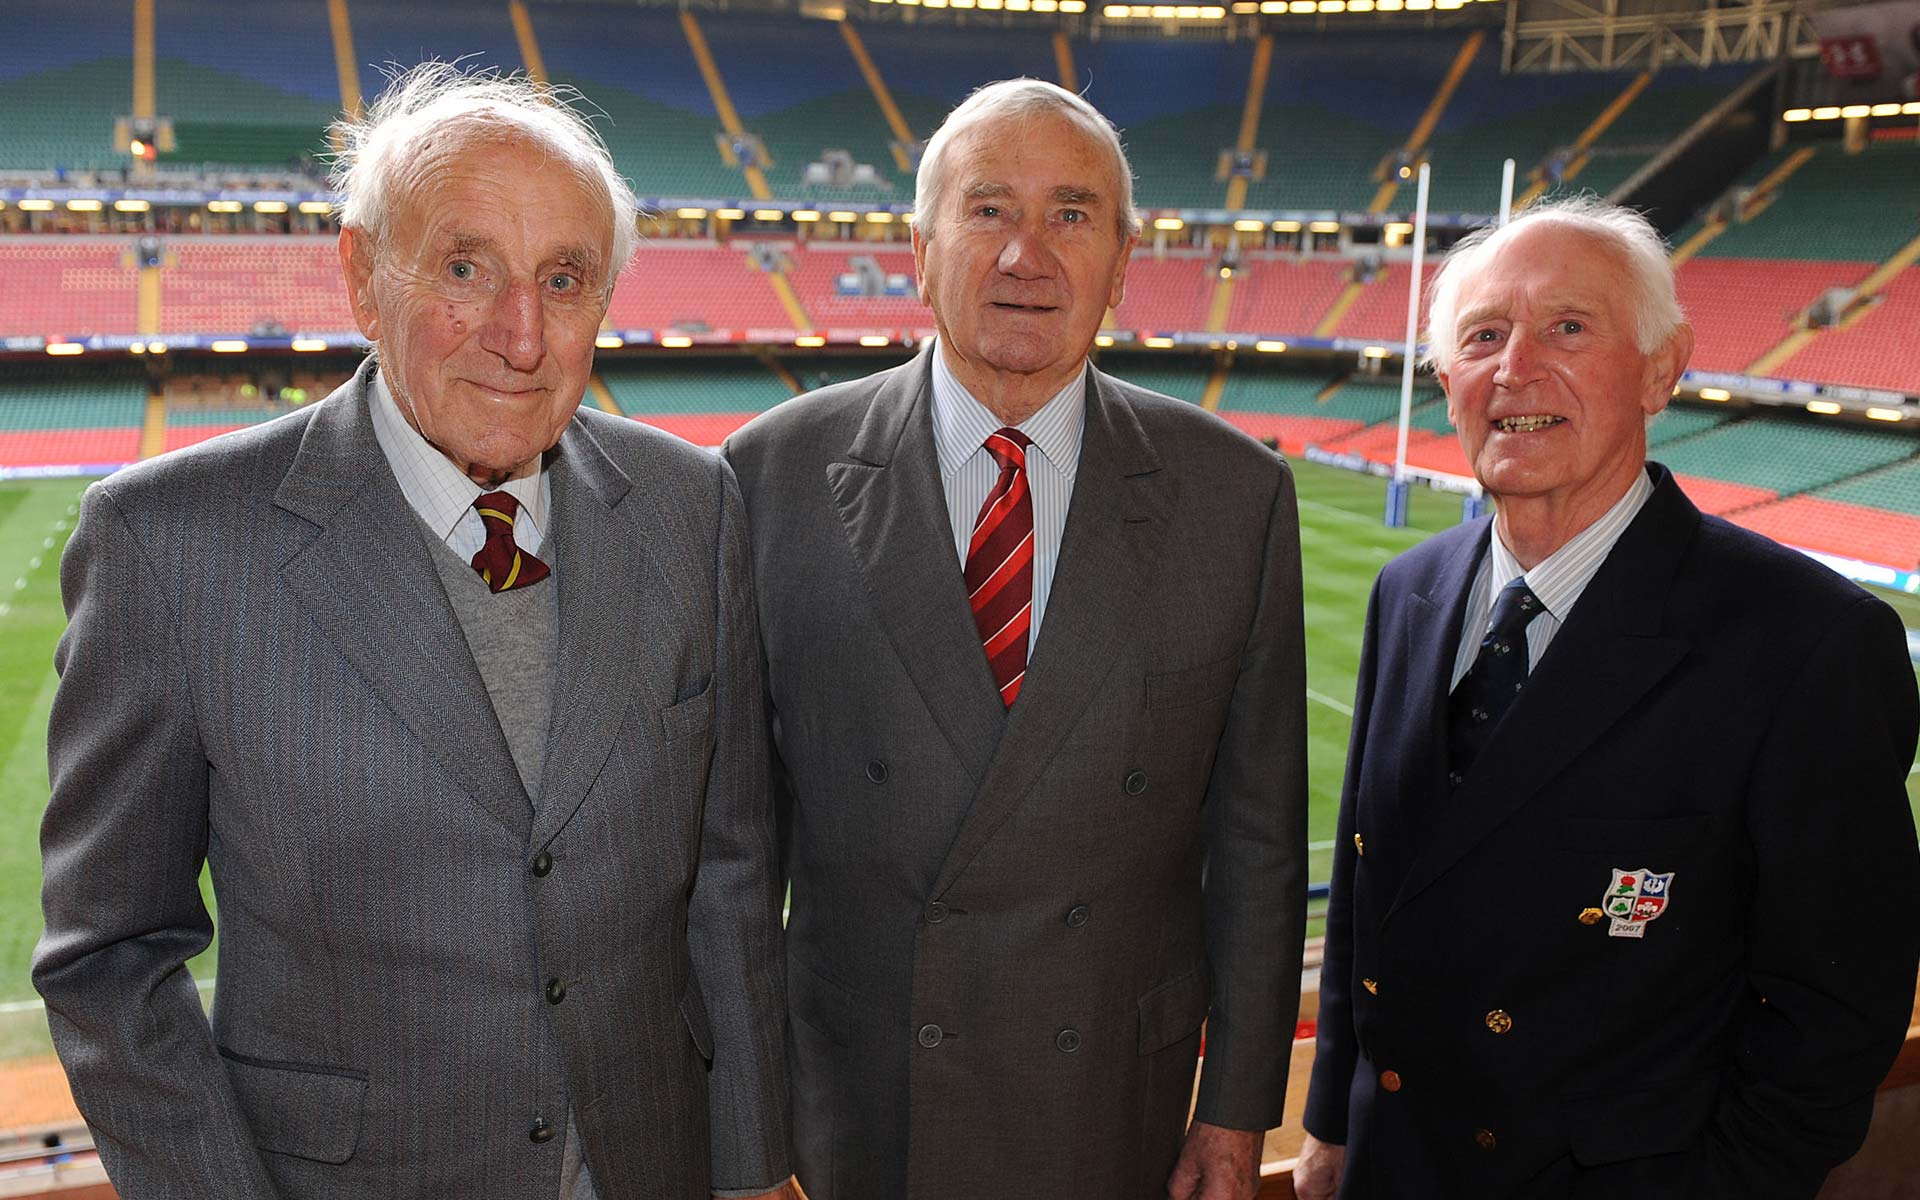 Former Wales Captain celebrates 90th